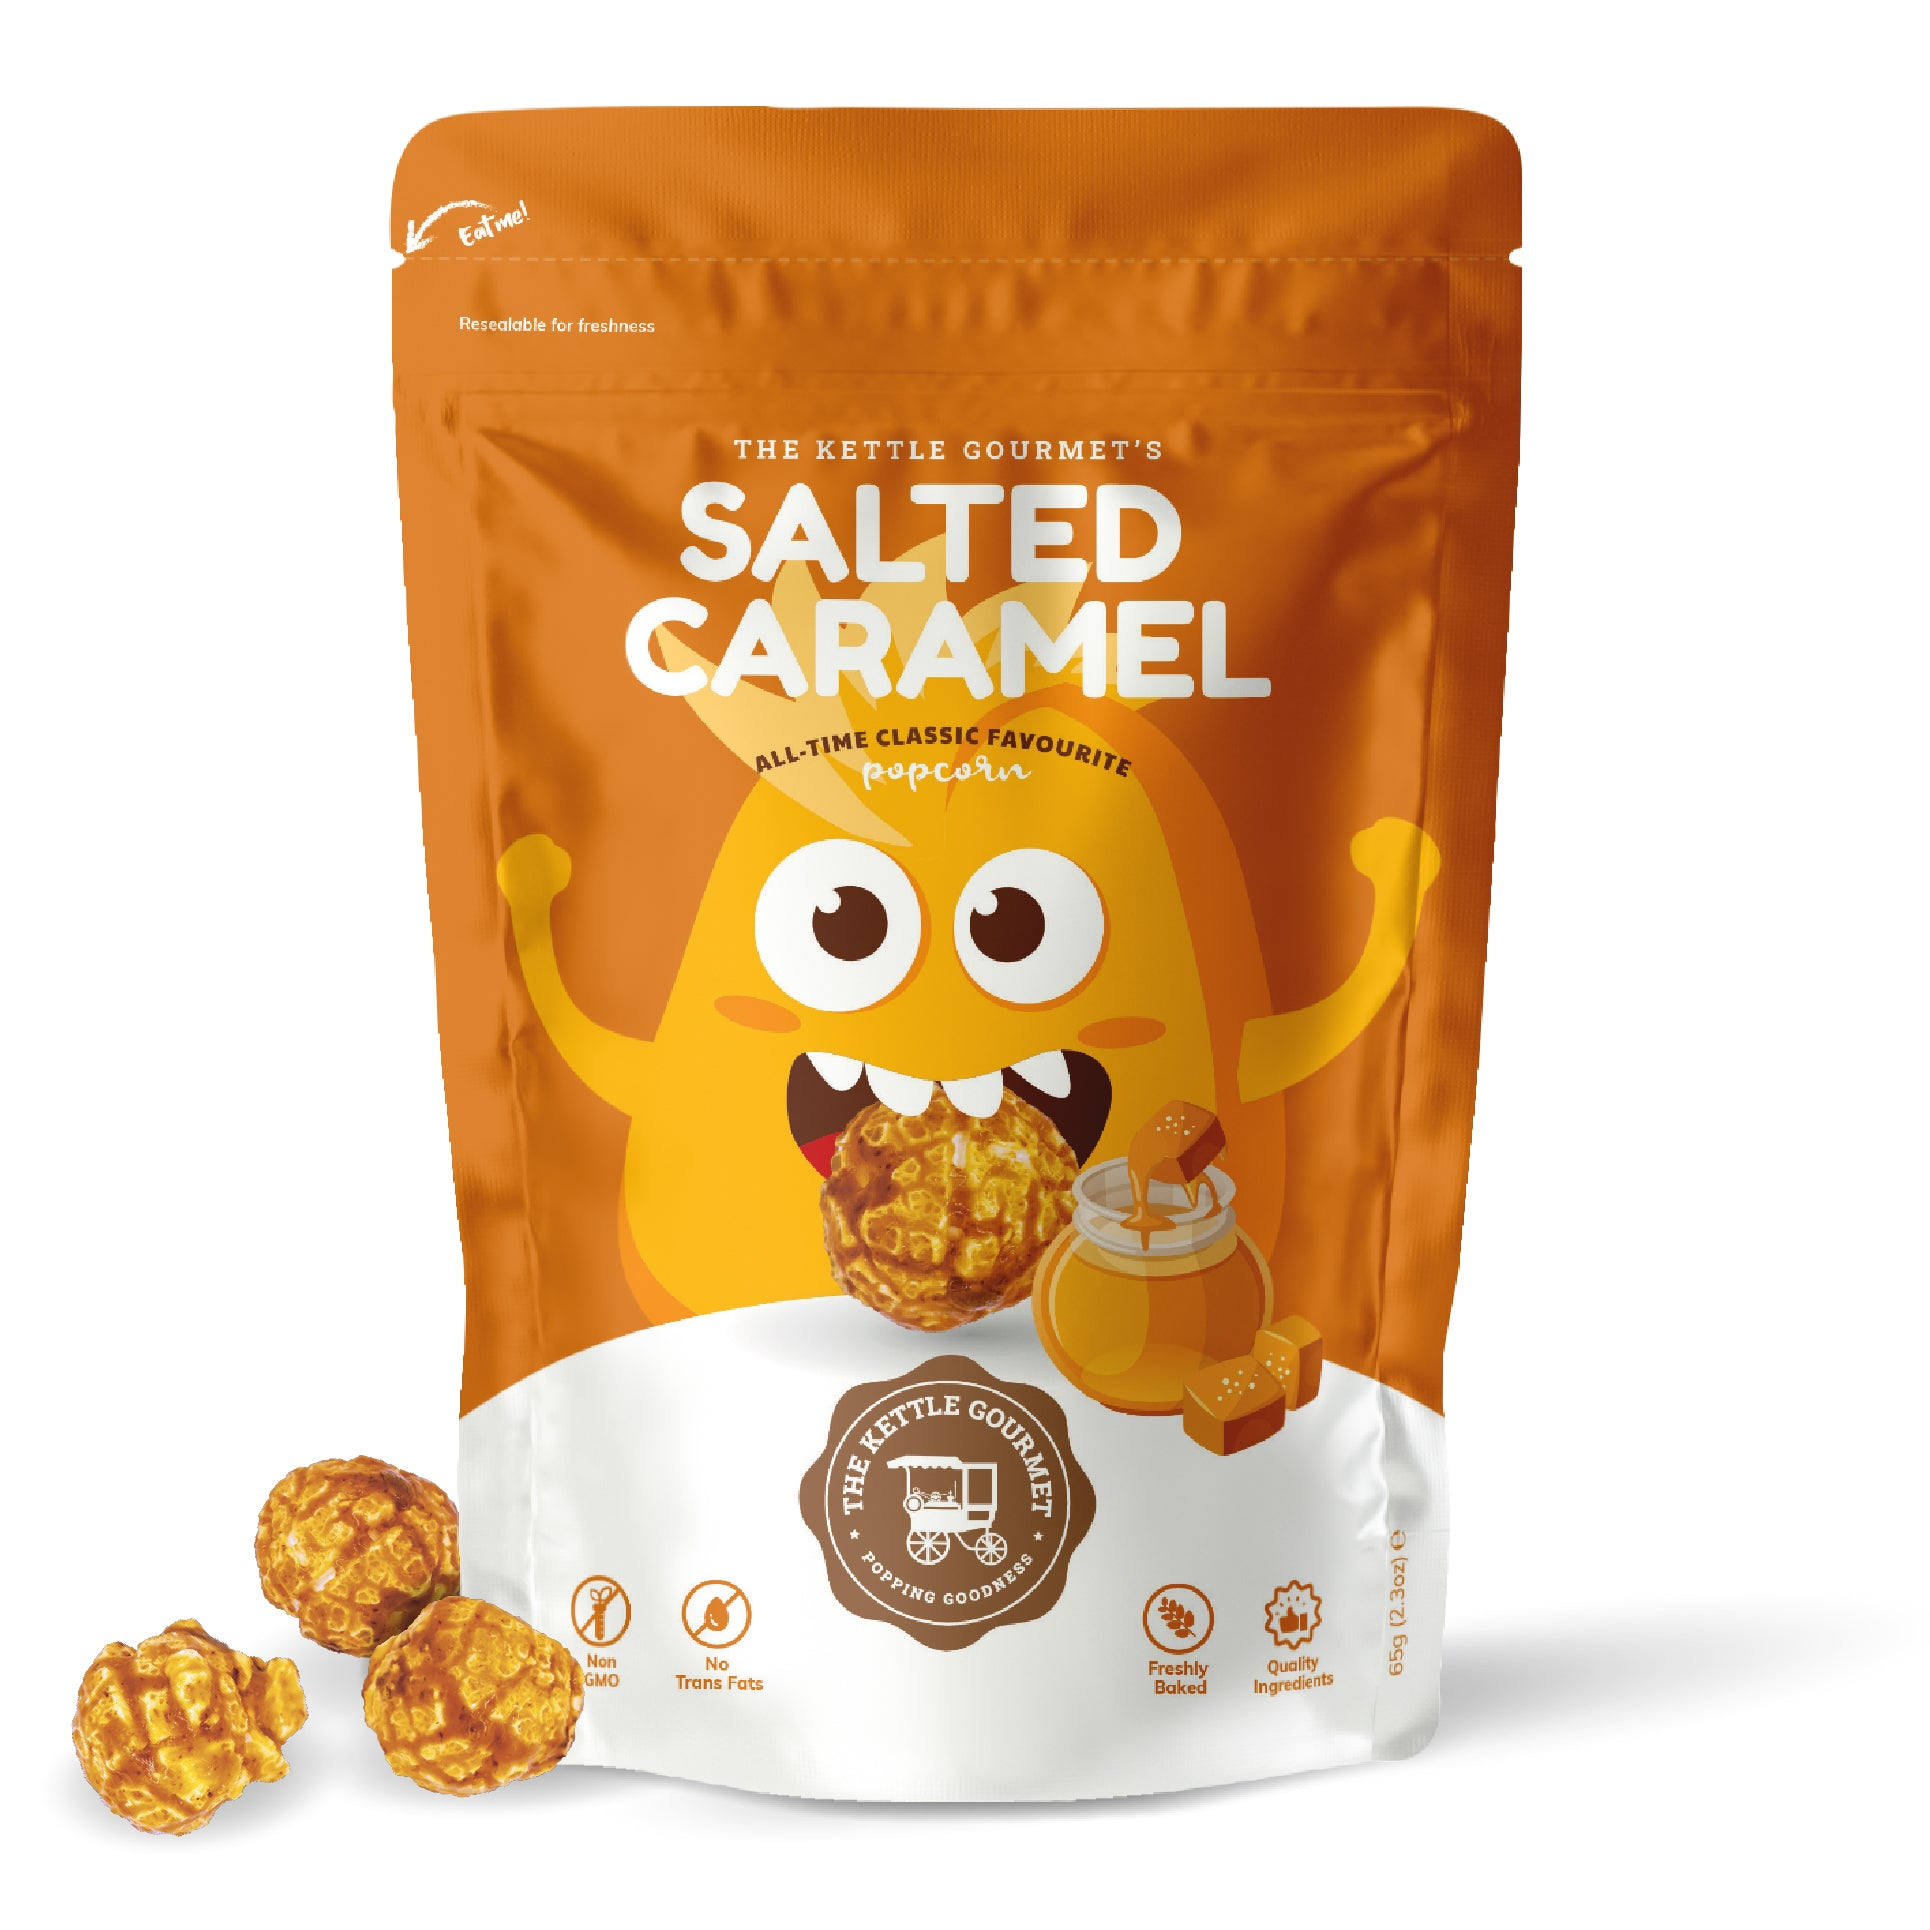 TKG Salted Caramel (All-time Classic Favourite Popcorn)